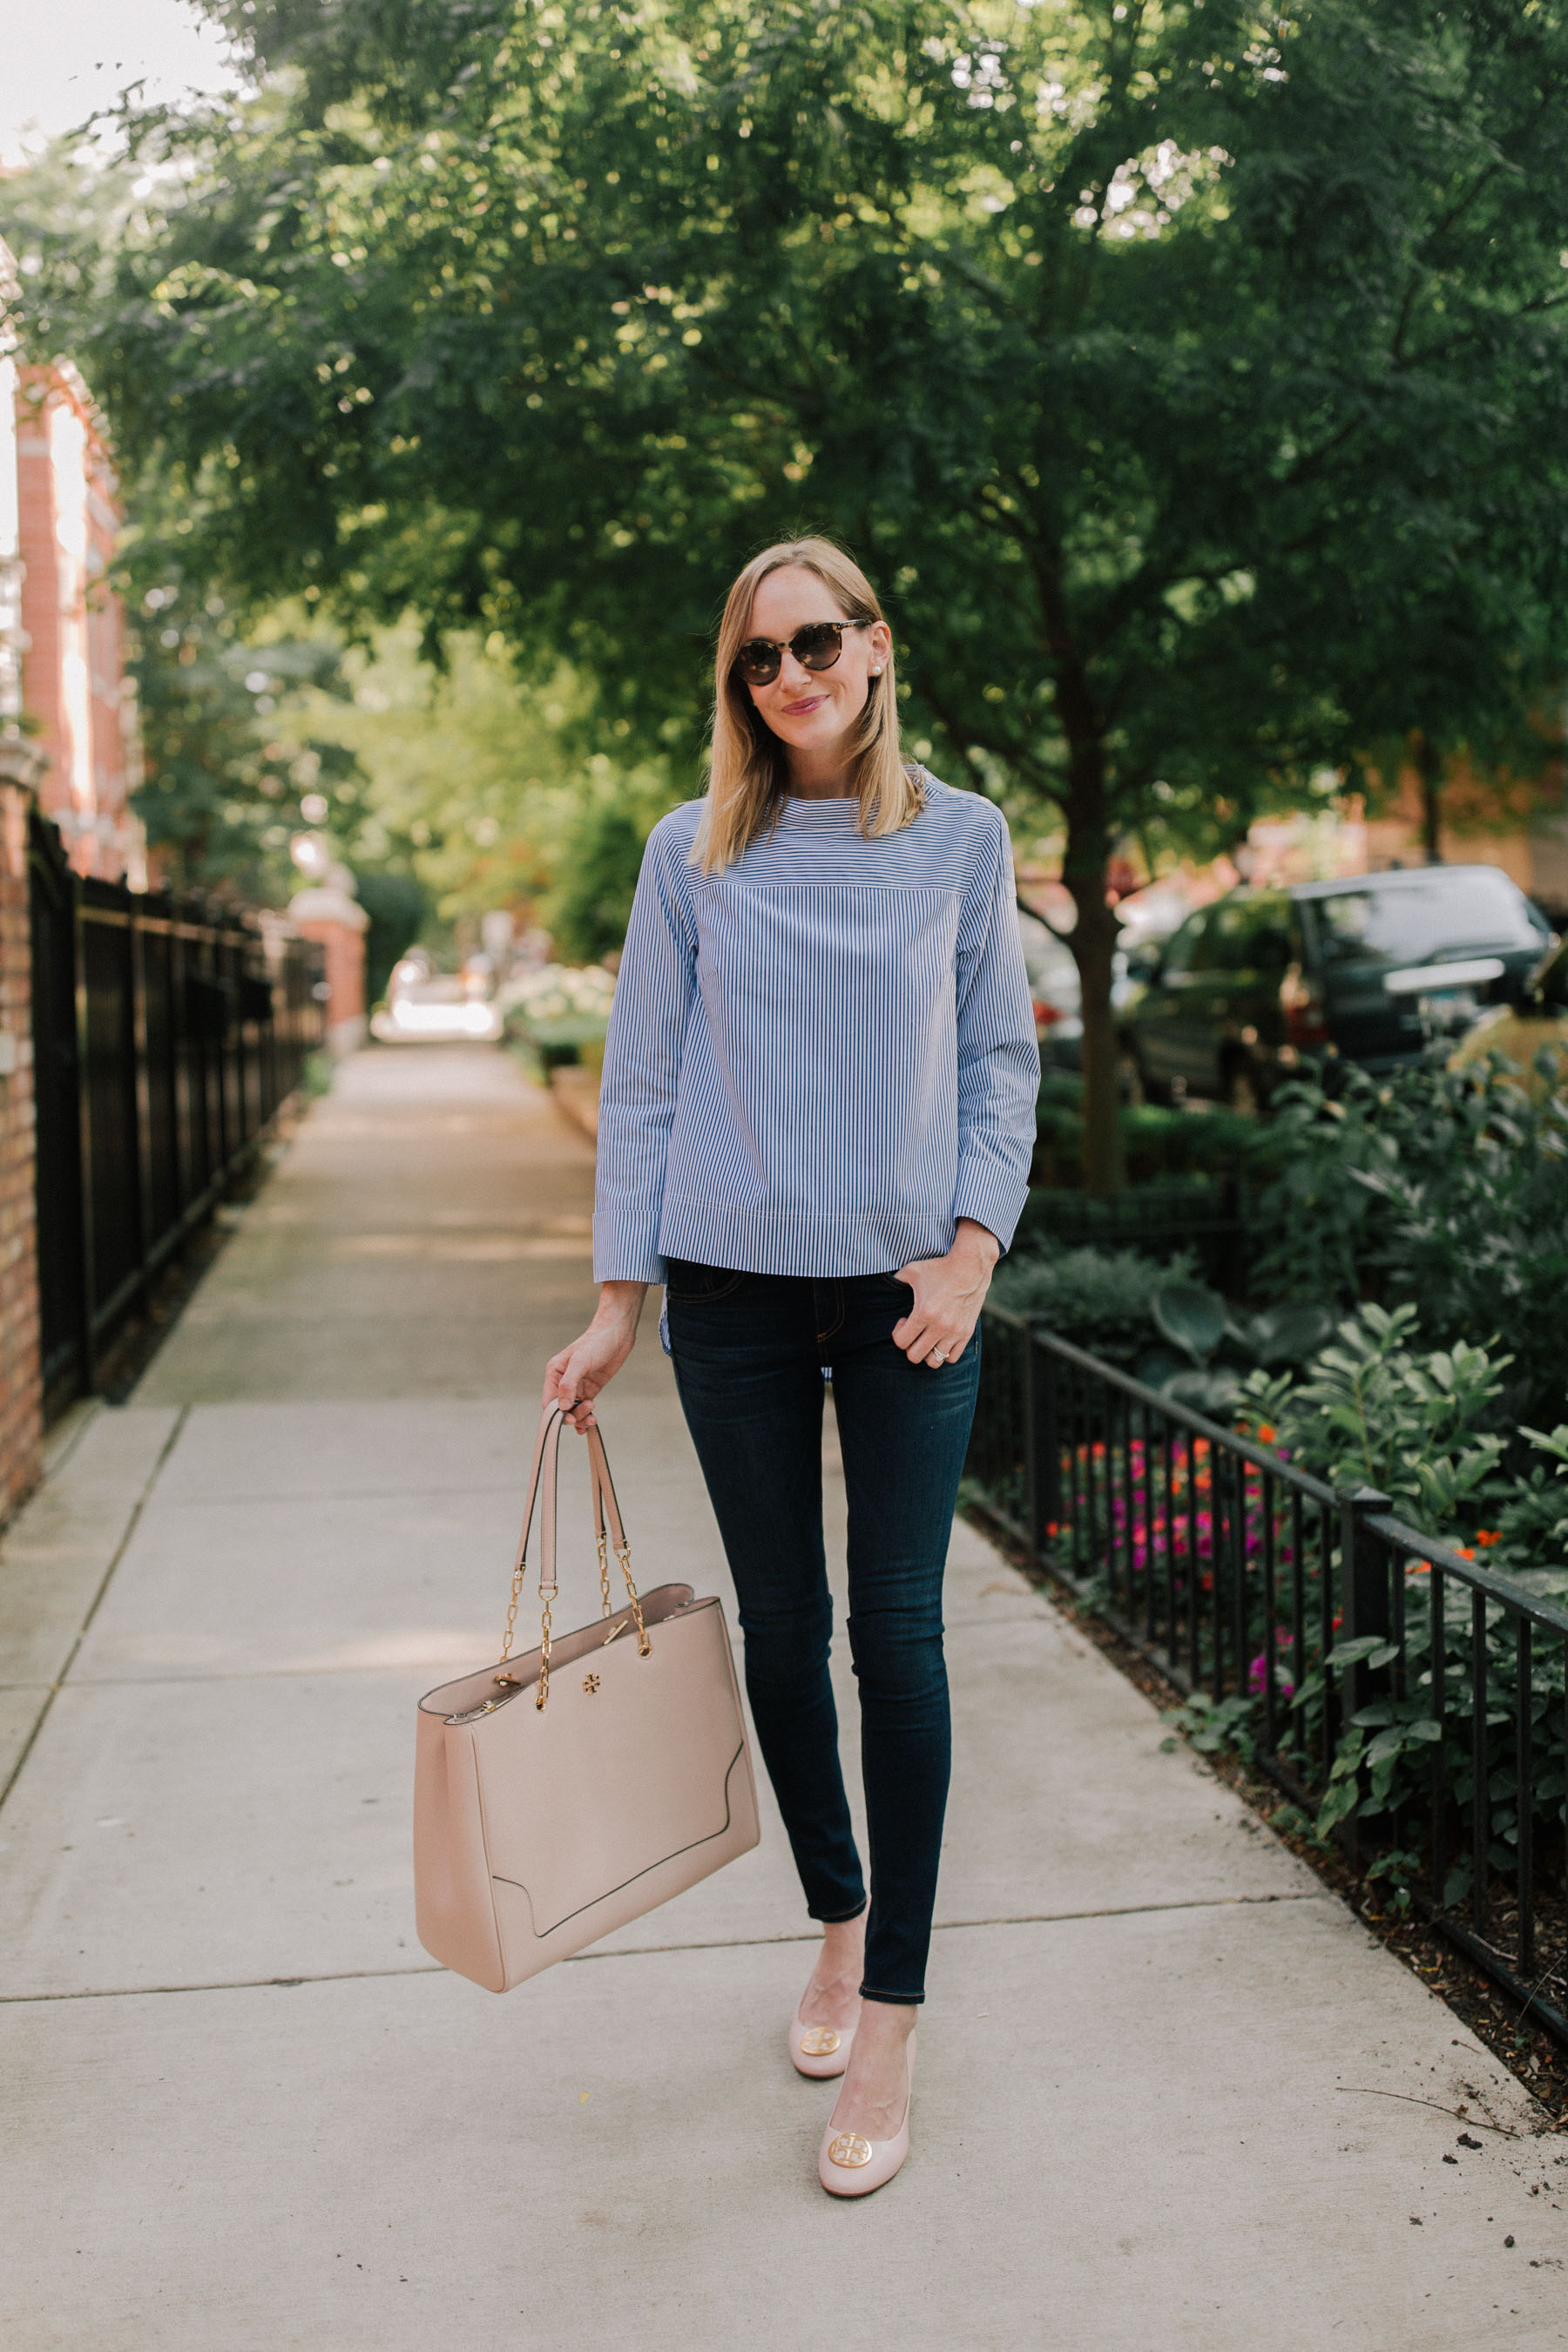 Tory Burch Benton Pumpv/ J.Crew Top (In solid here. J.Crew also carries it.) / Tory Burch Marsden Tote